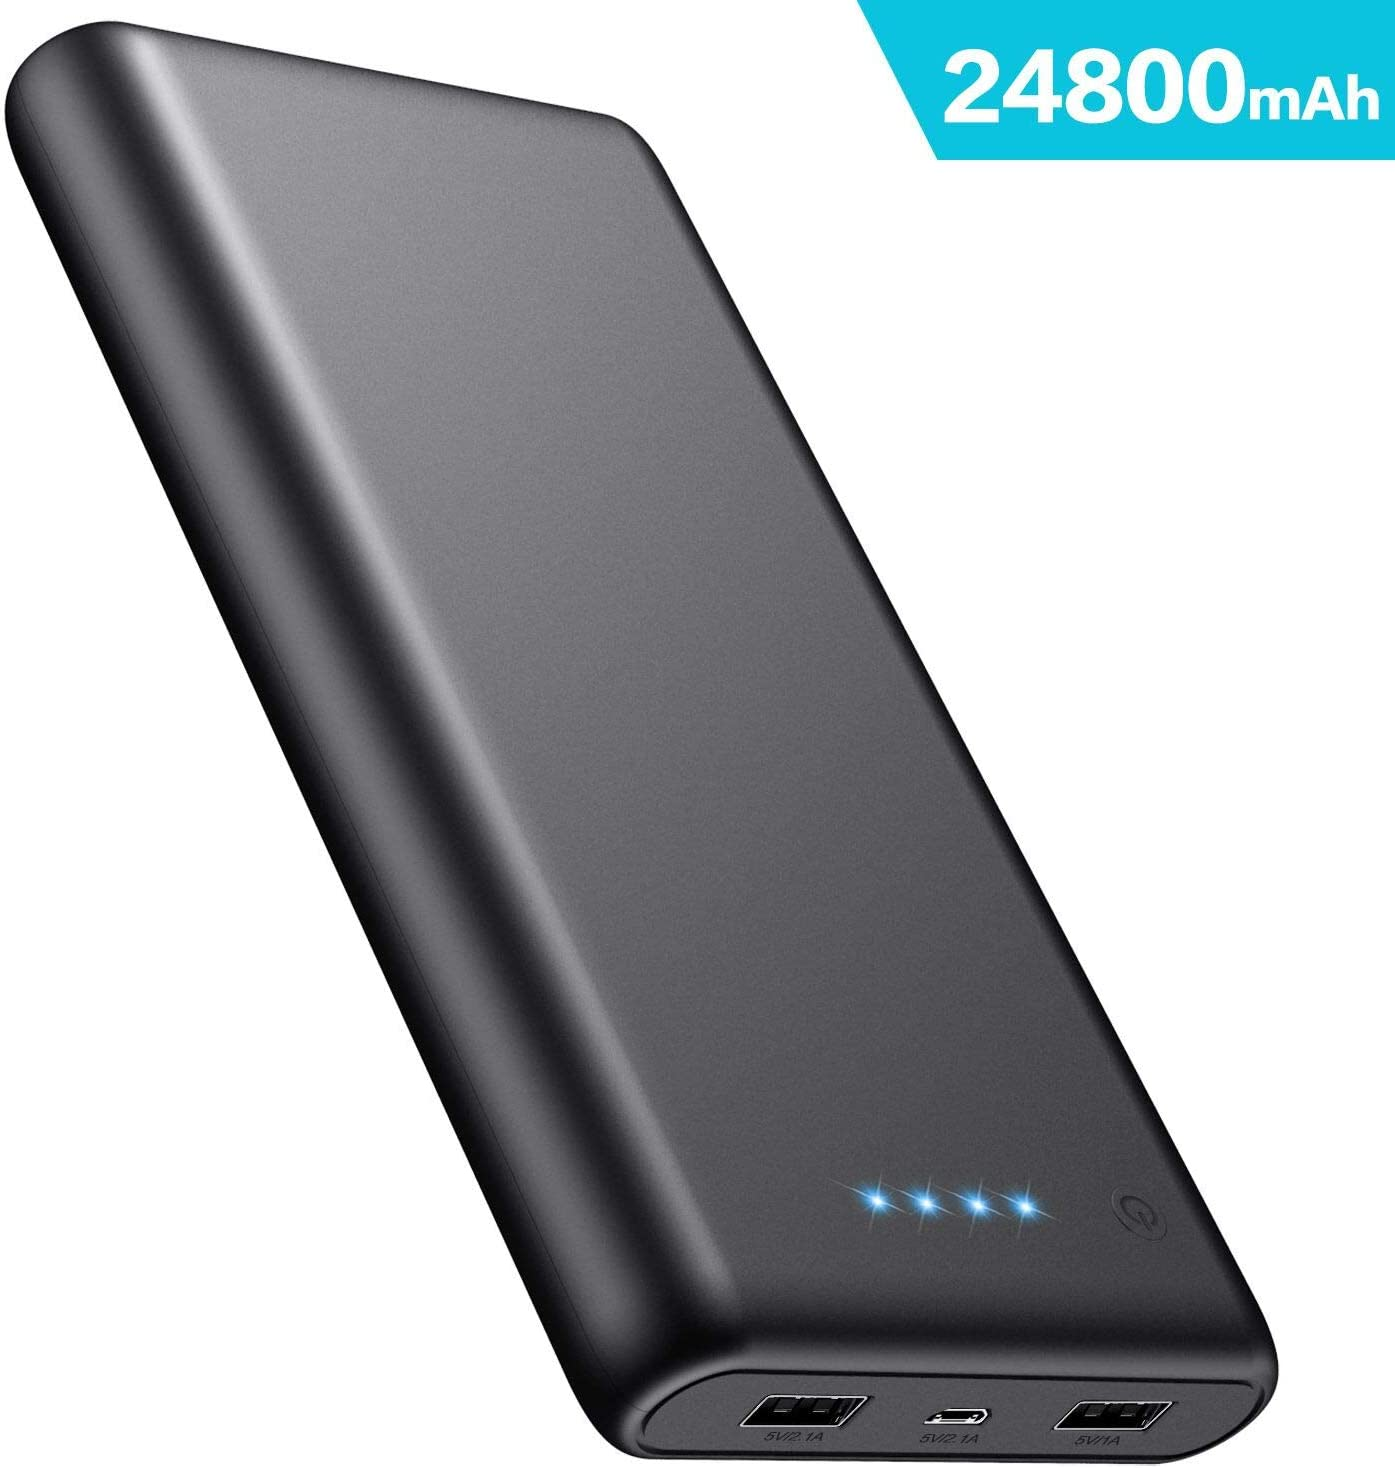 iPosible Power Bank 24800mAh, Caricabatterie Portatile 2 USB Porte, Batteria...